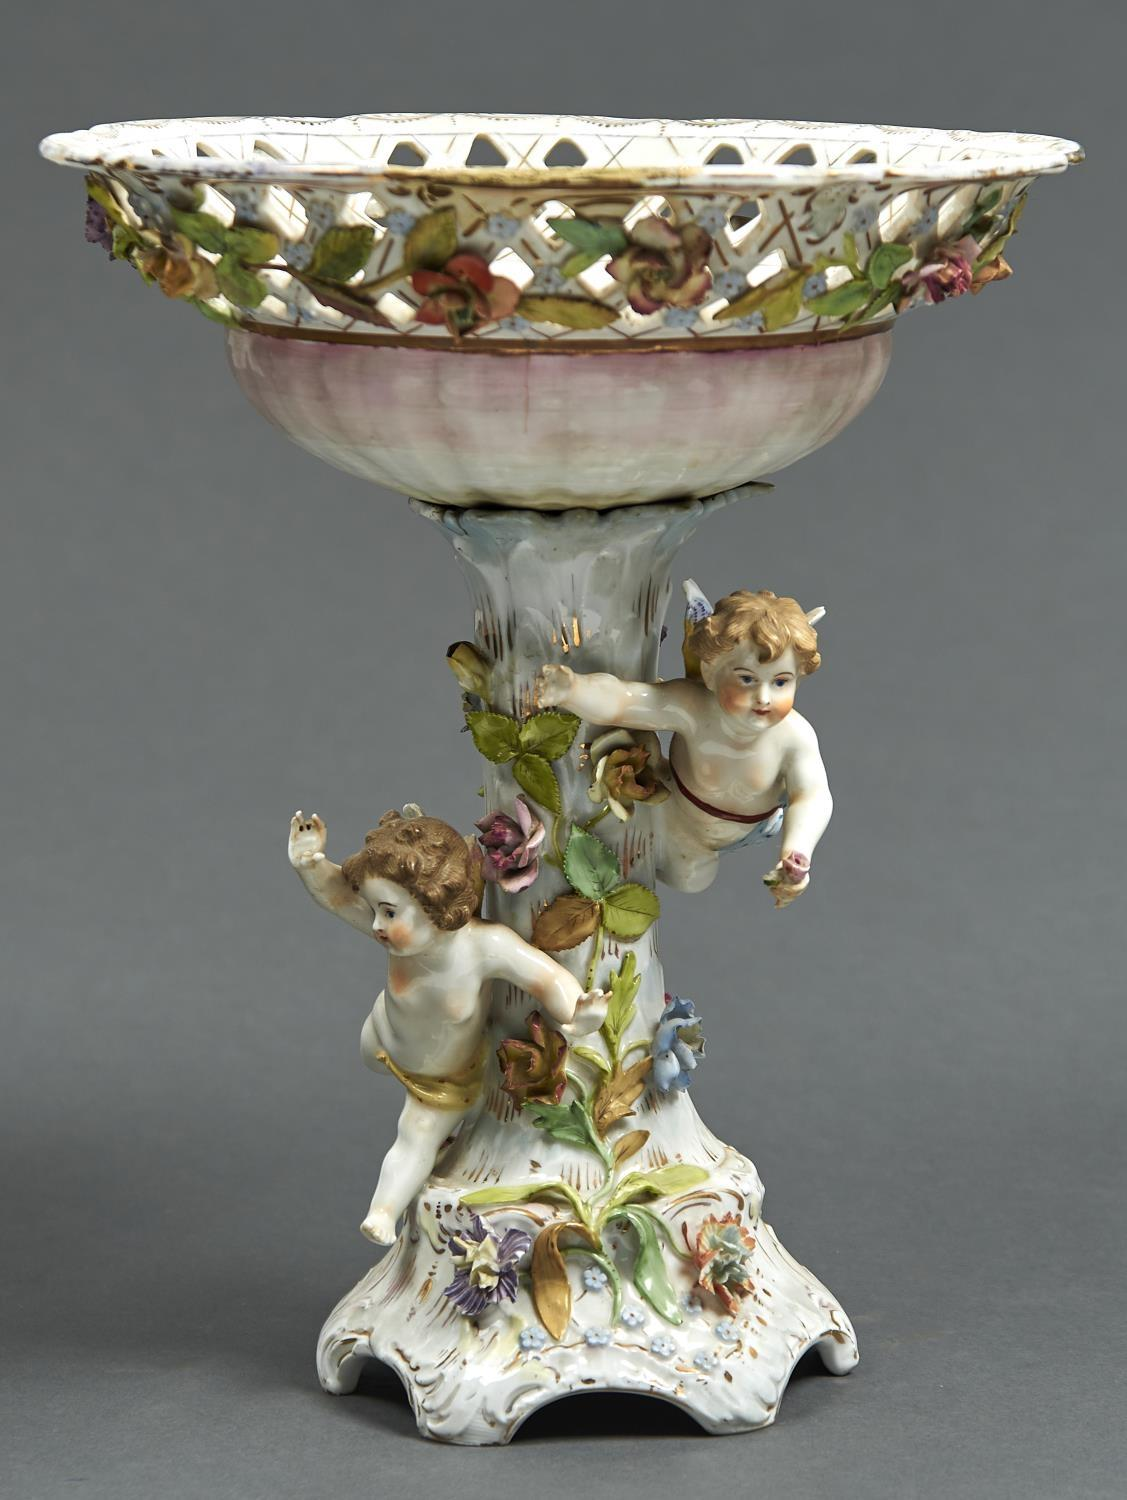 A POTSCHAPPEL FLORAL ENCRUSTED CENTREPIECE, C1900, THE SHELL SHAPED BOWL WITH TRELLIS BORDER ON